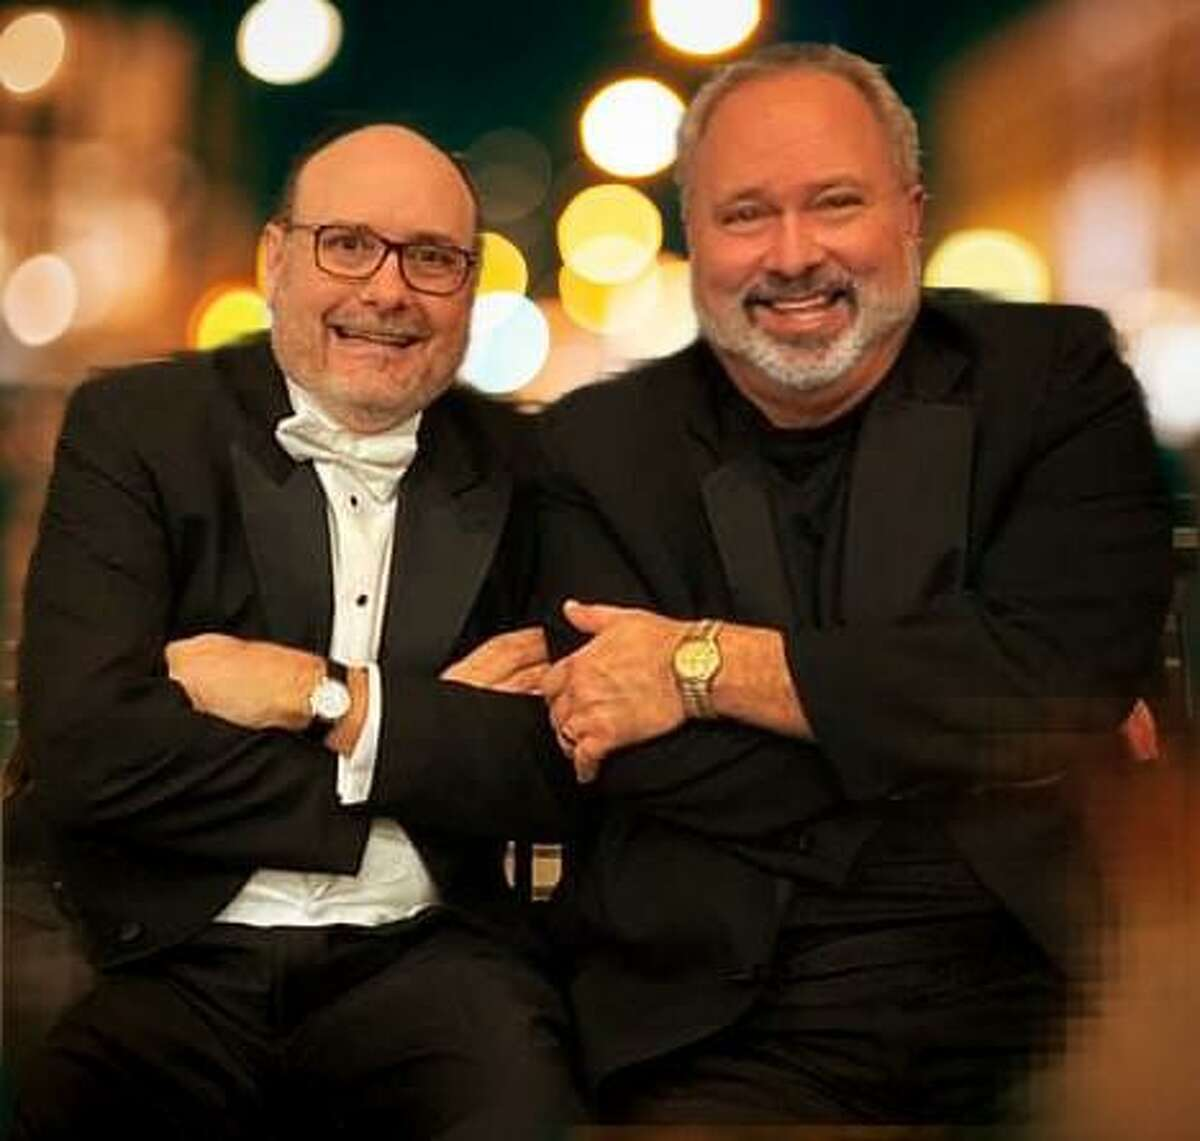 Maestro Tom Jaber invited his former student and choral director Dr. Todd Miller to combine their choruses for two performances of the Mozart Requiem on 9/11 and 9/12. Jaber conducts the church choir at St. Anne Catholic Church in Houston and also leads his own chorus RESOUND!